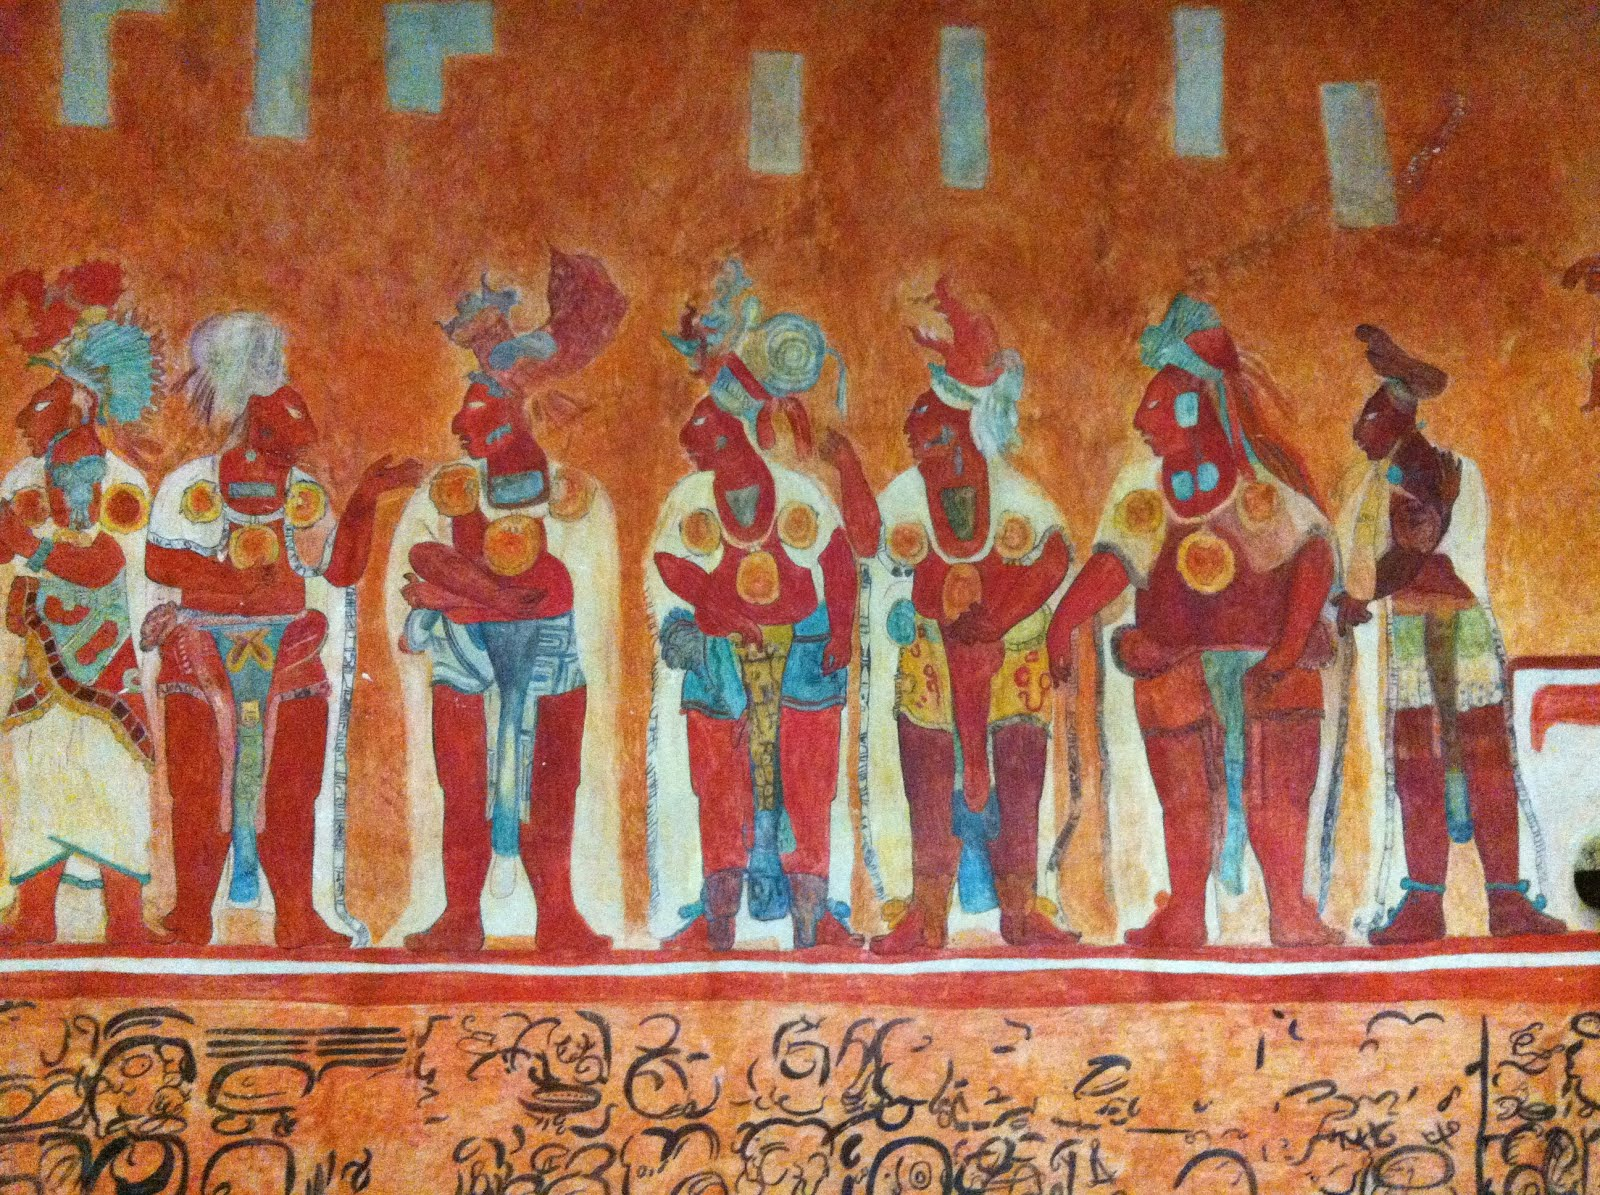 Bonampak murals reproduction